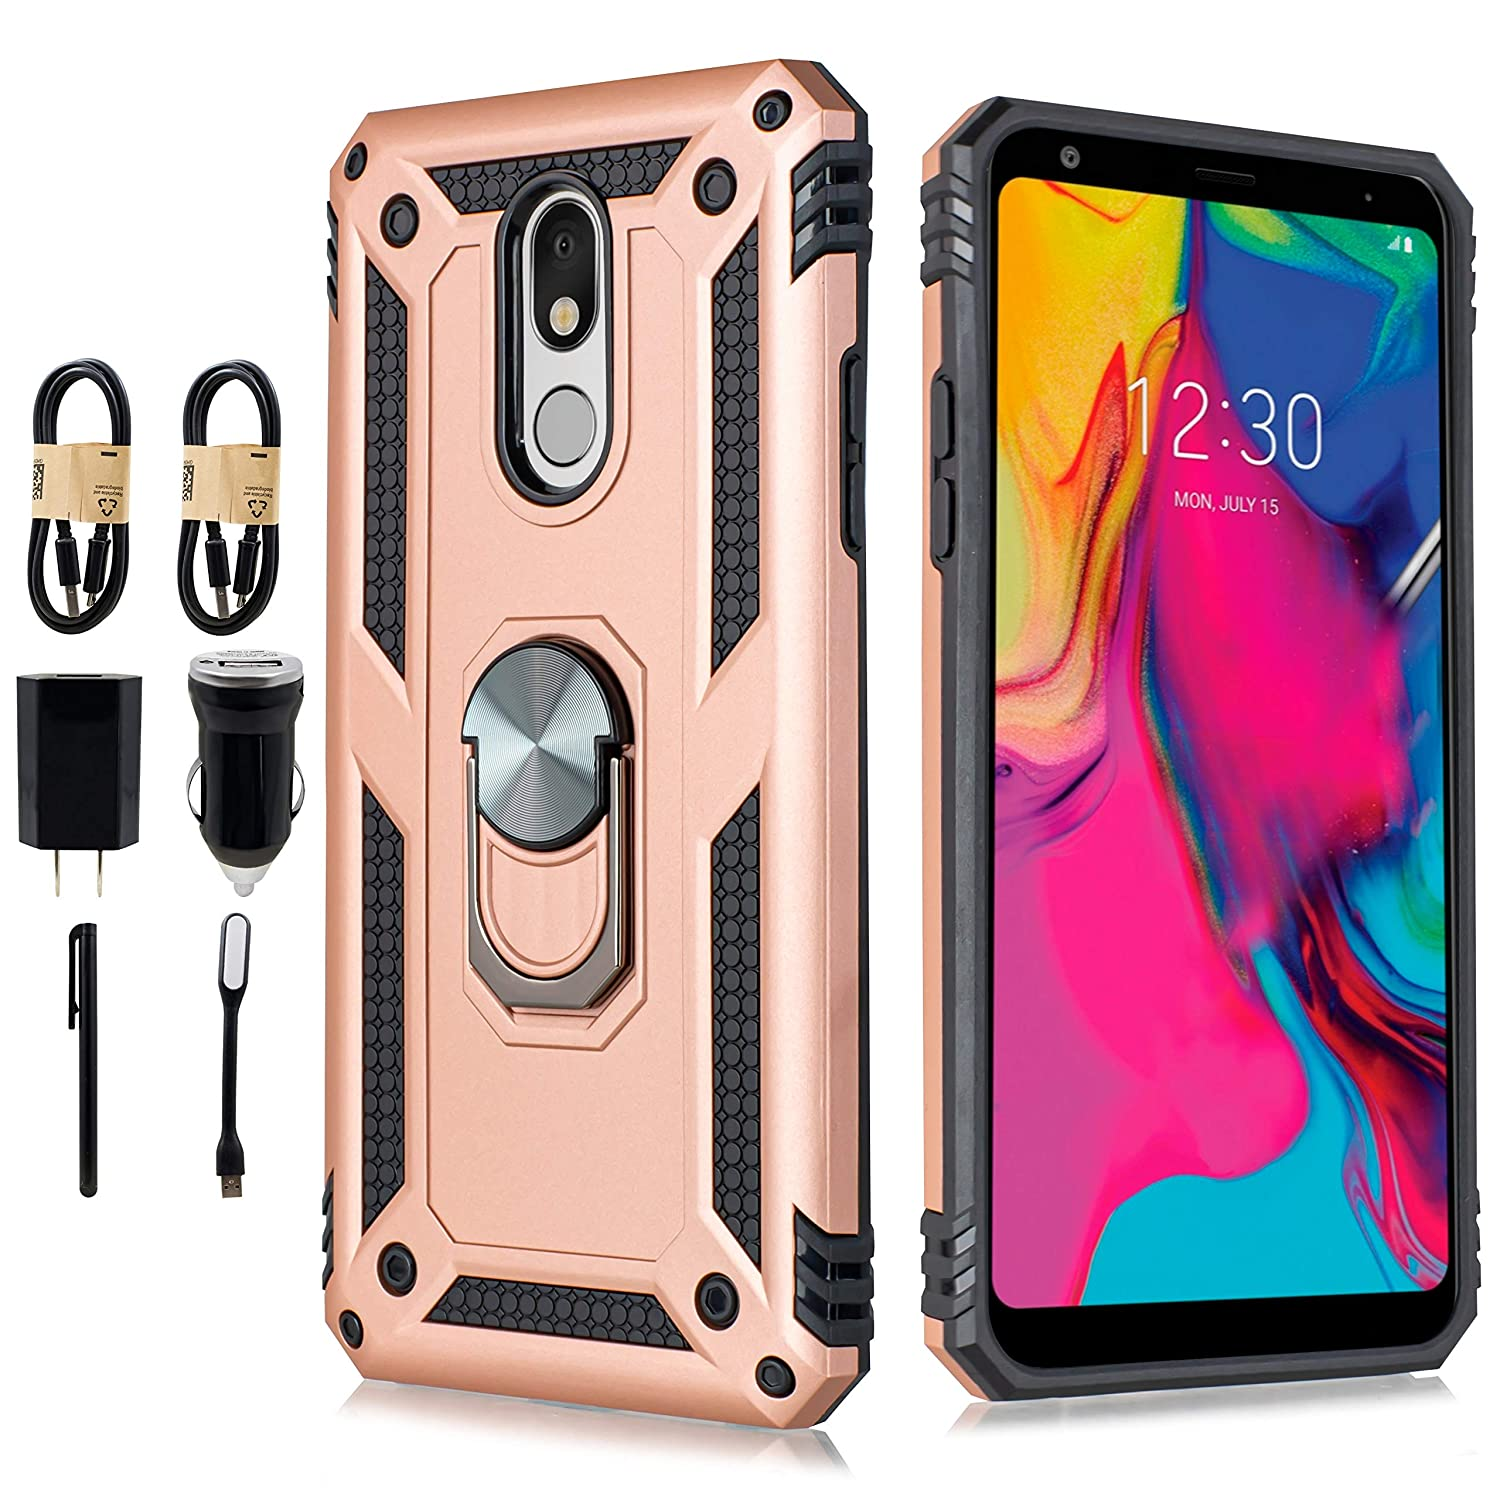 Stylo 5 Case,LG Stylo 5 Magnetic Shockproof Hard Armor Ring Holder with Kickstand and Car Mount Phone case [Tempered Glass Screen] [Accessory Pack] (Rose)